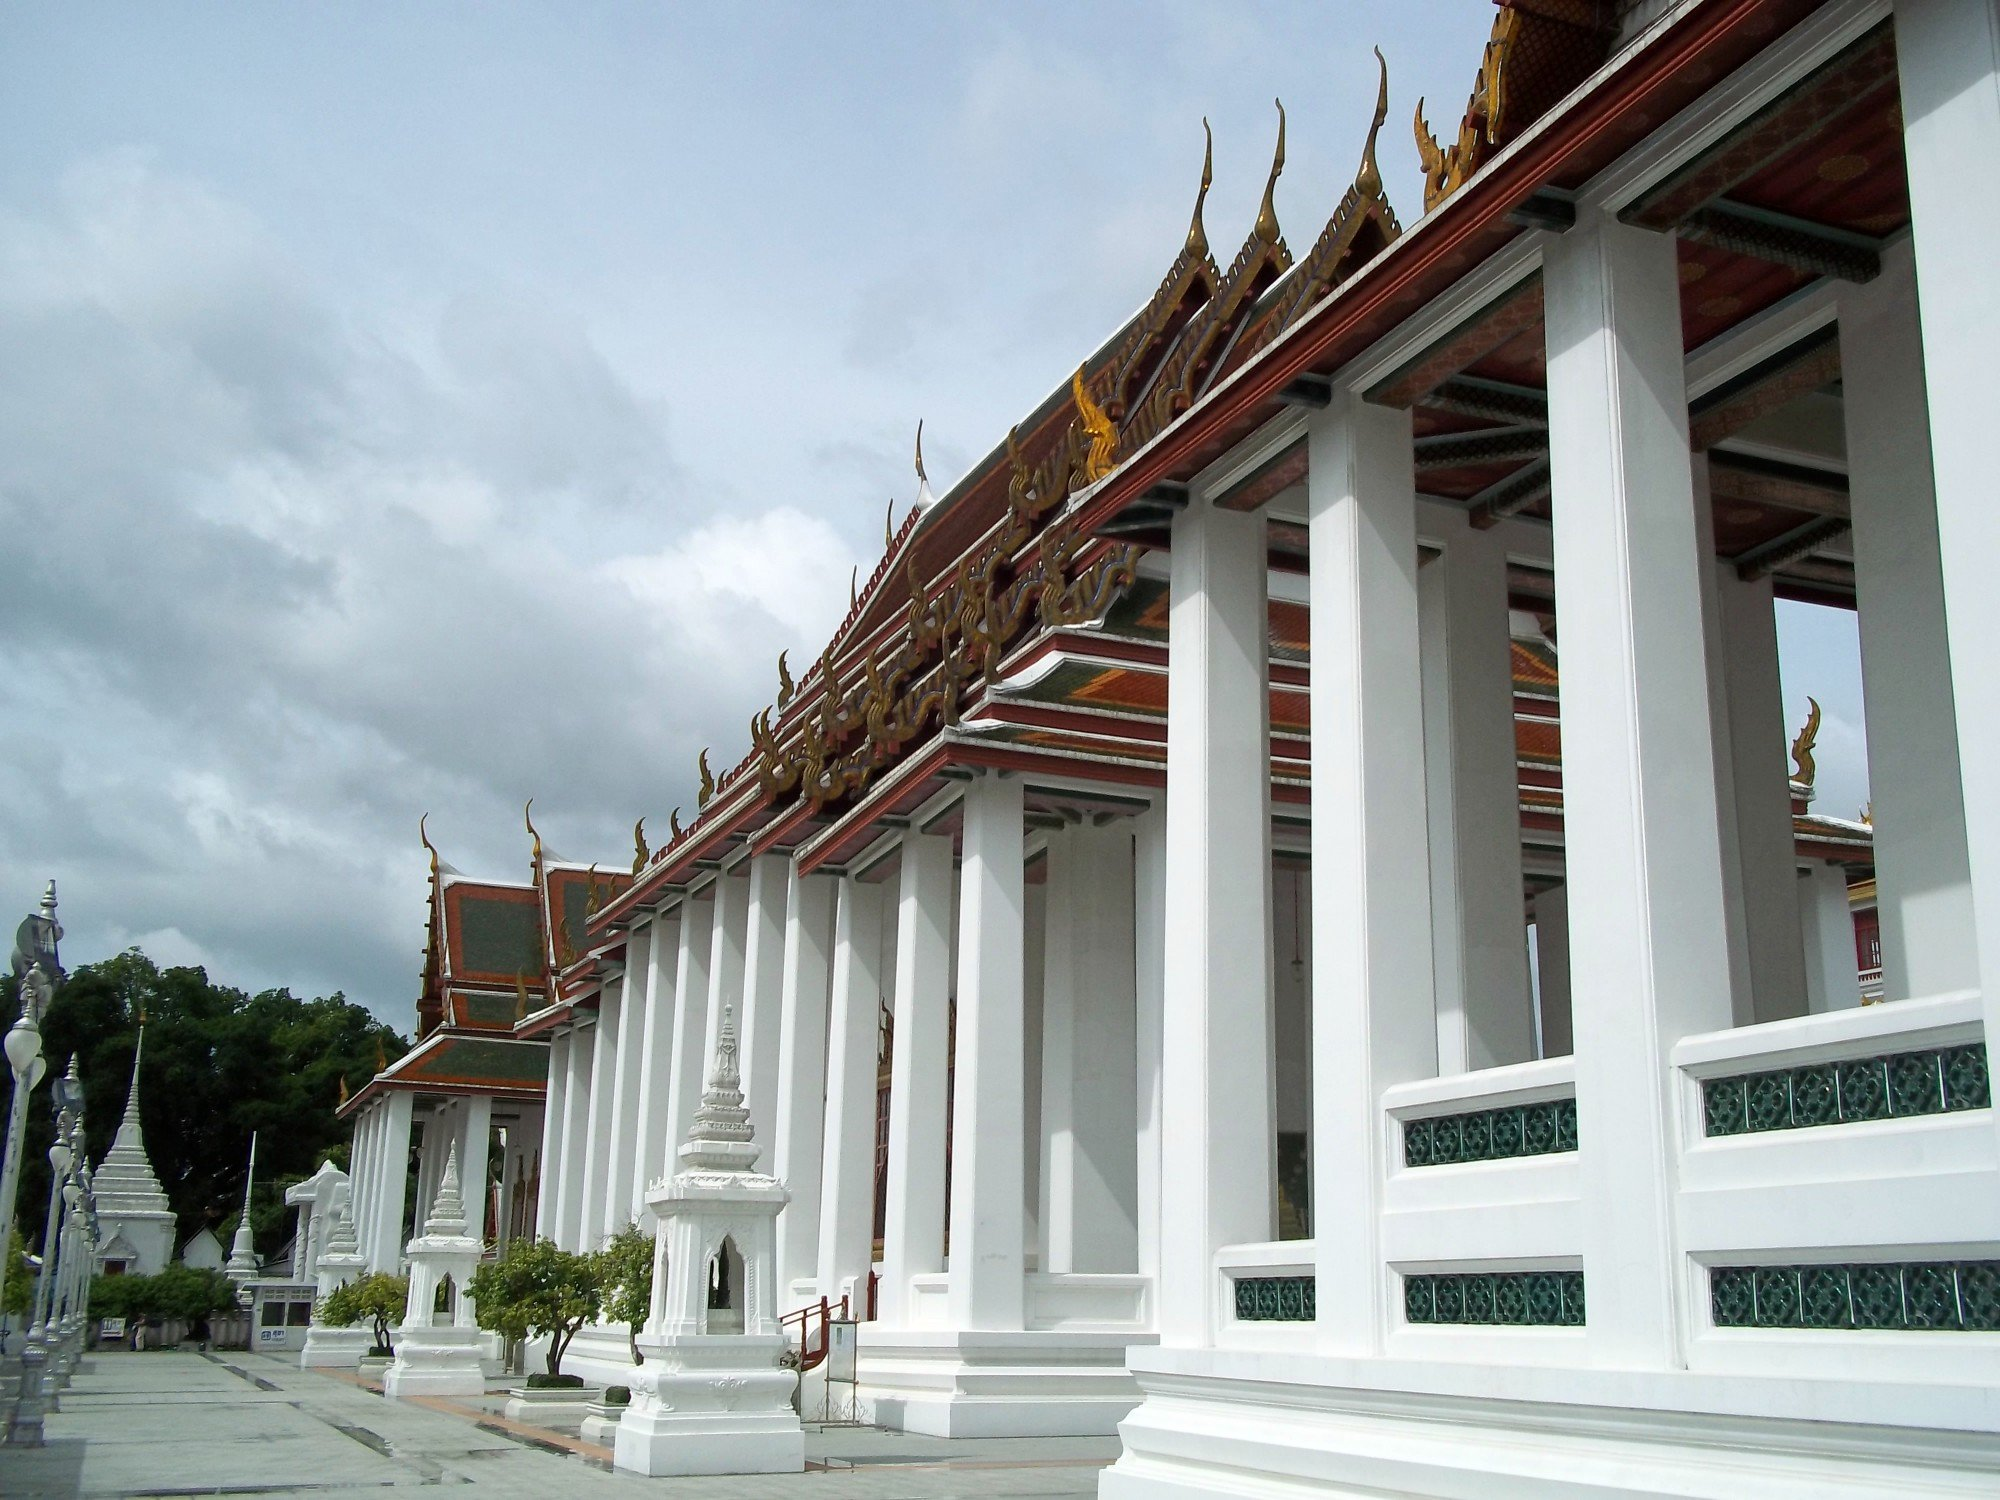 Walkway in front of the temple buildings at Wat Ratchanatda